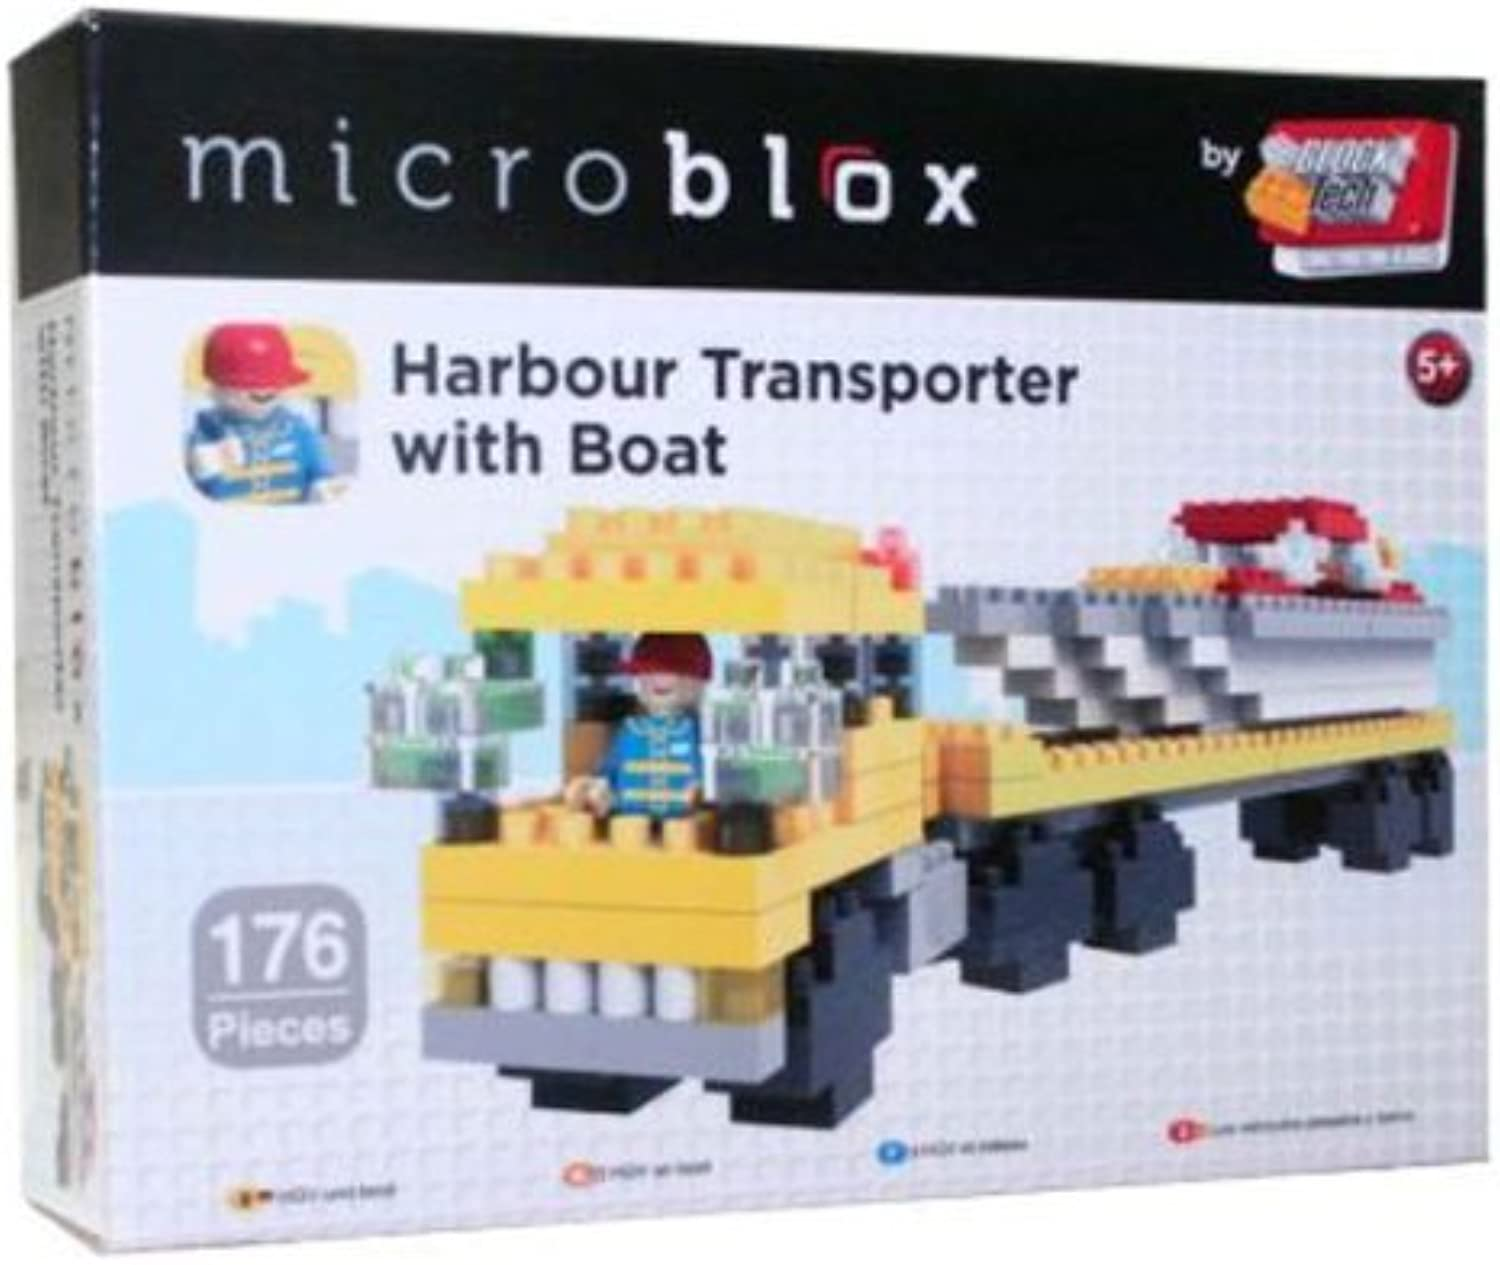 Grafix Microblox Building Bricks Harbour Transporter with Boat by Microblox